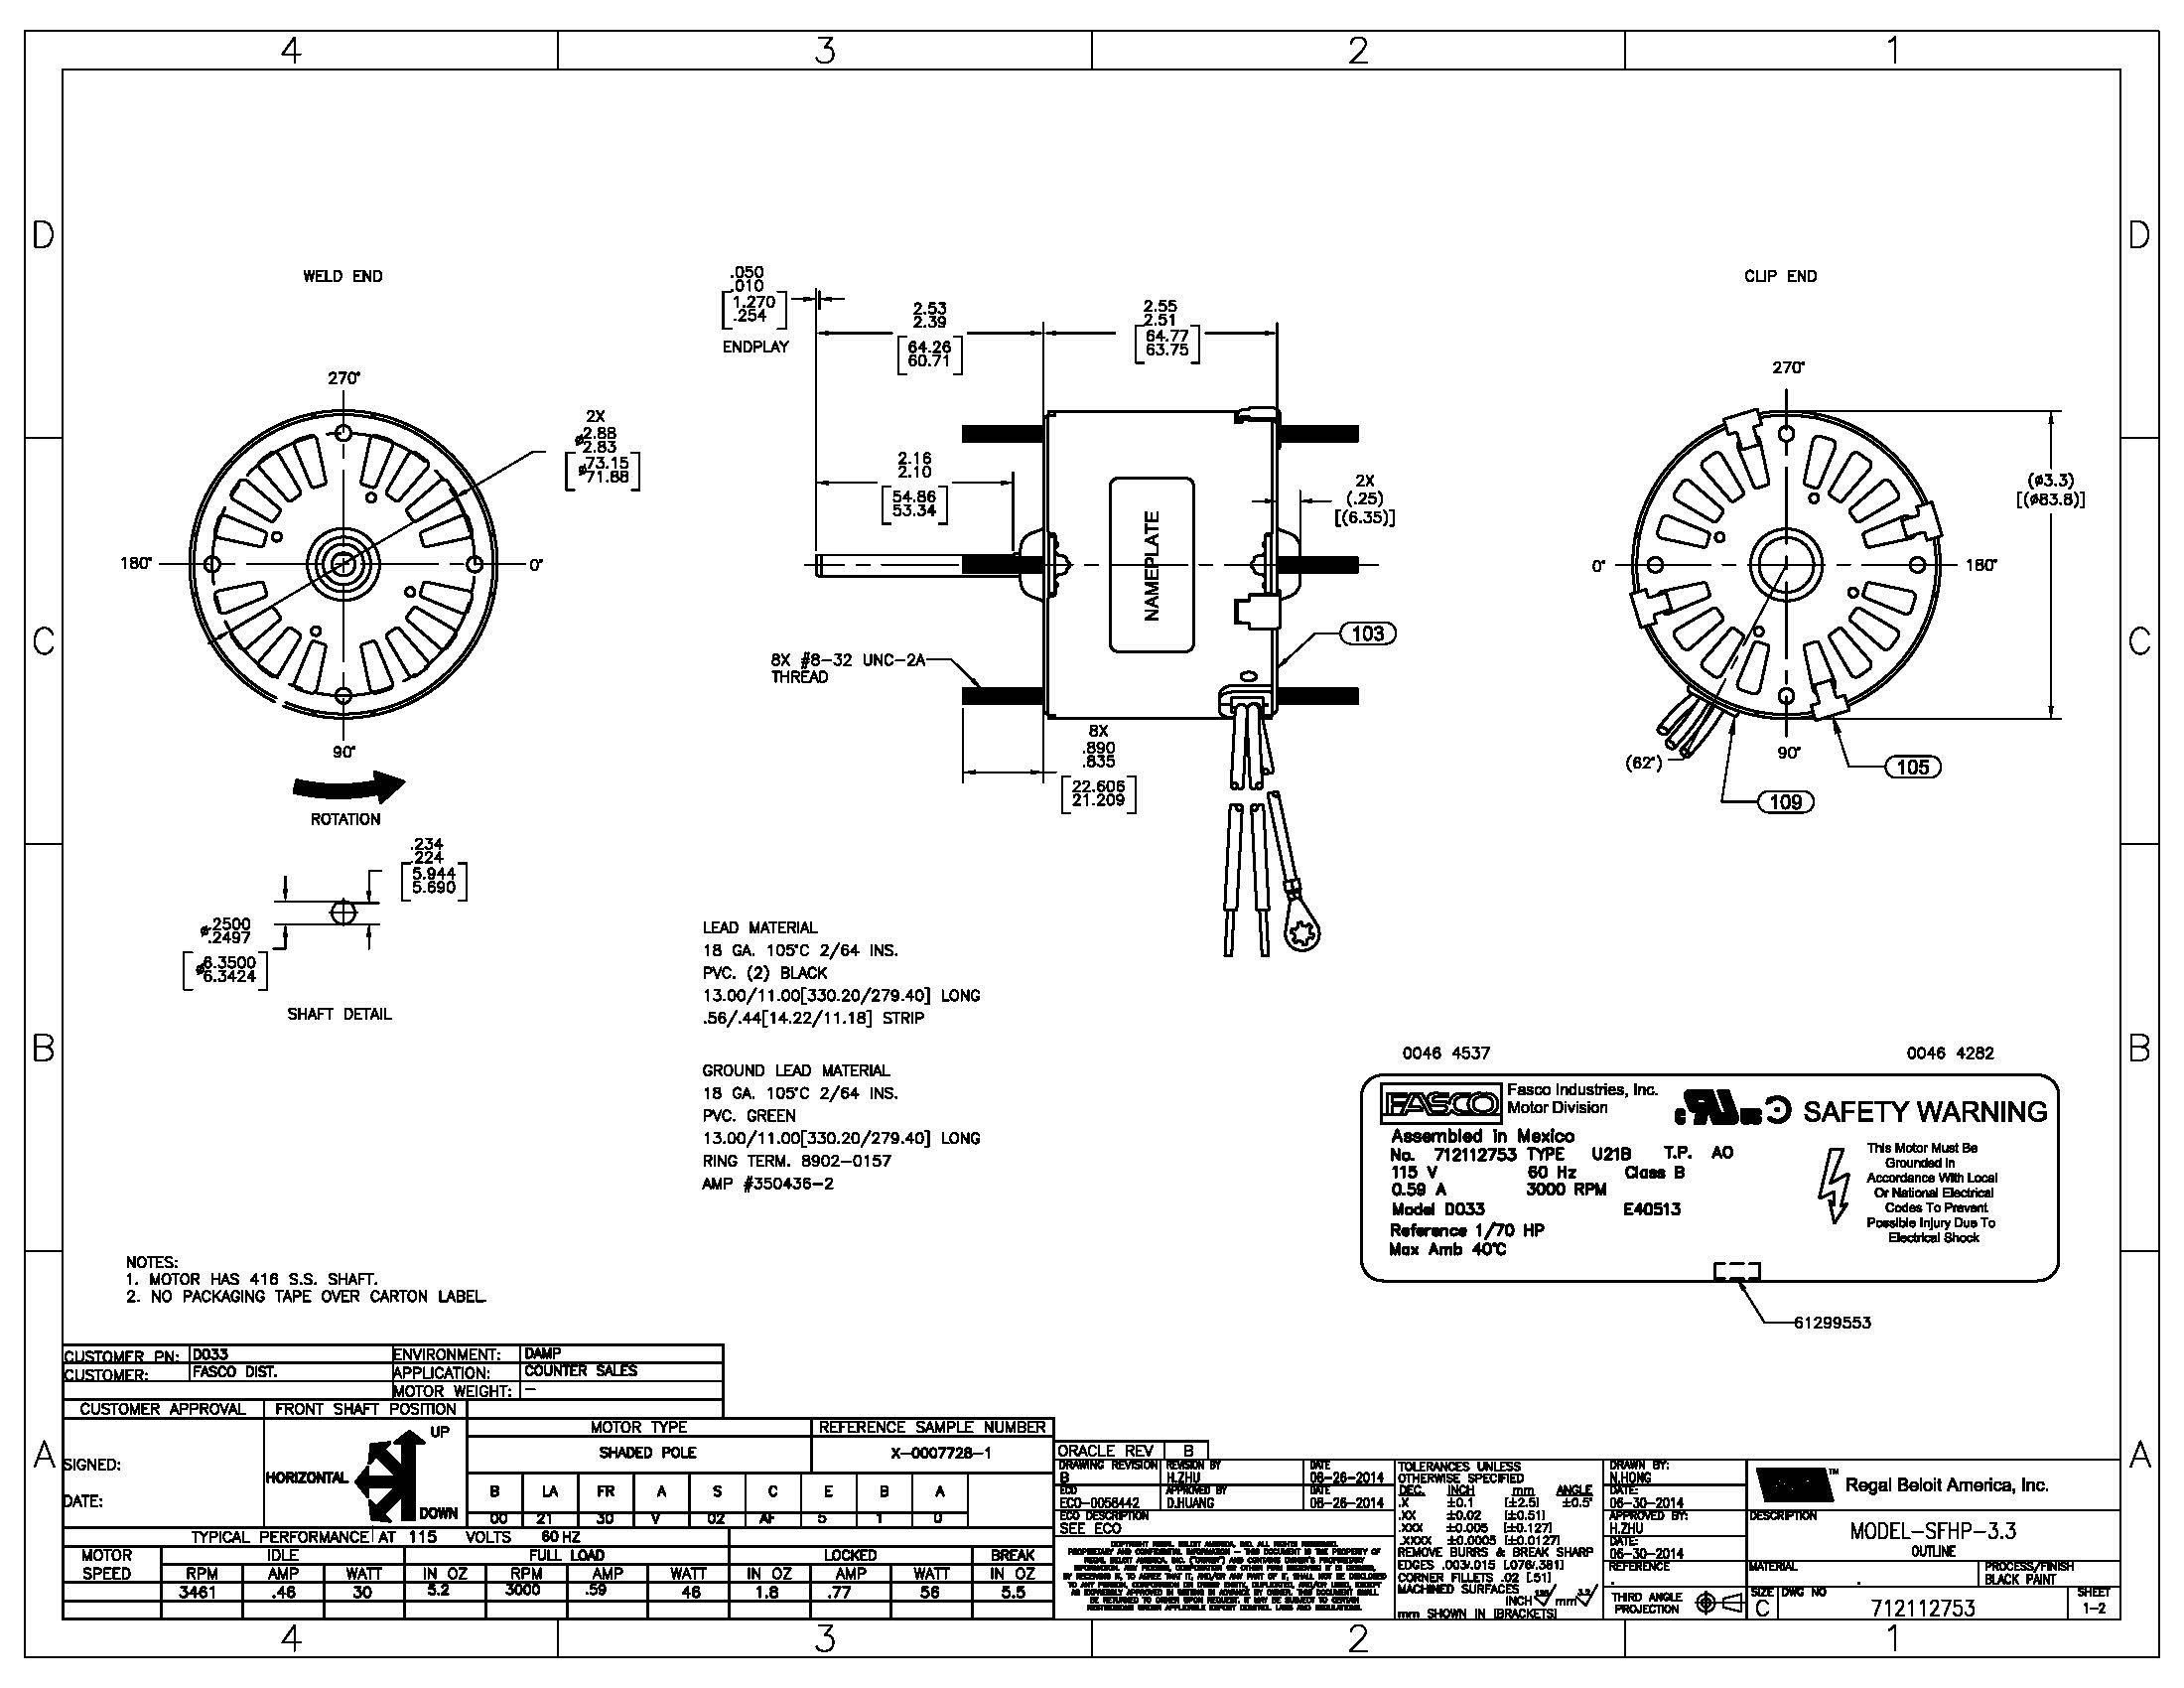 fasco motors wiring diagram Download-Wiring Diagram Fasco Motors Best Wiring Diagram for Fasco Blower Motor Fresh Wiring Diagram Shaded 8-h